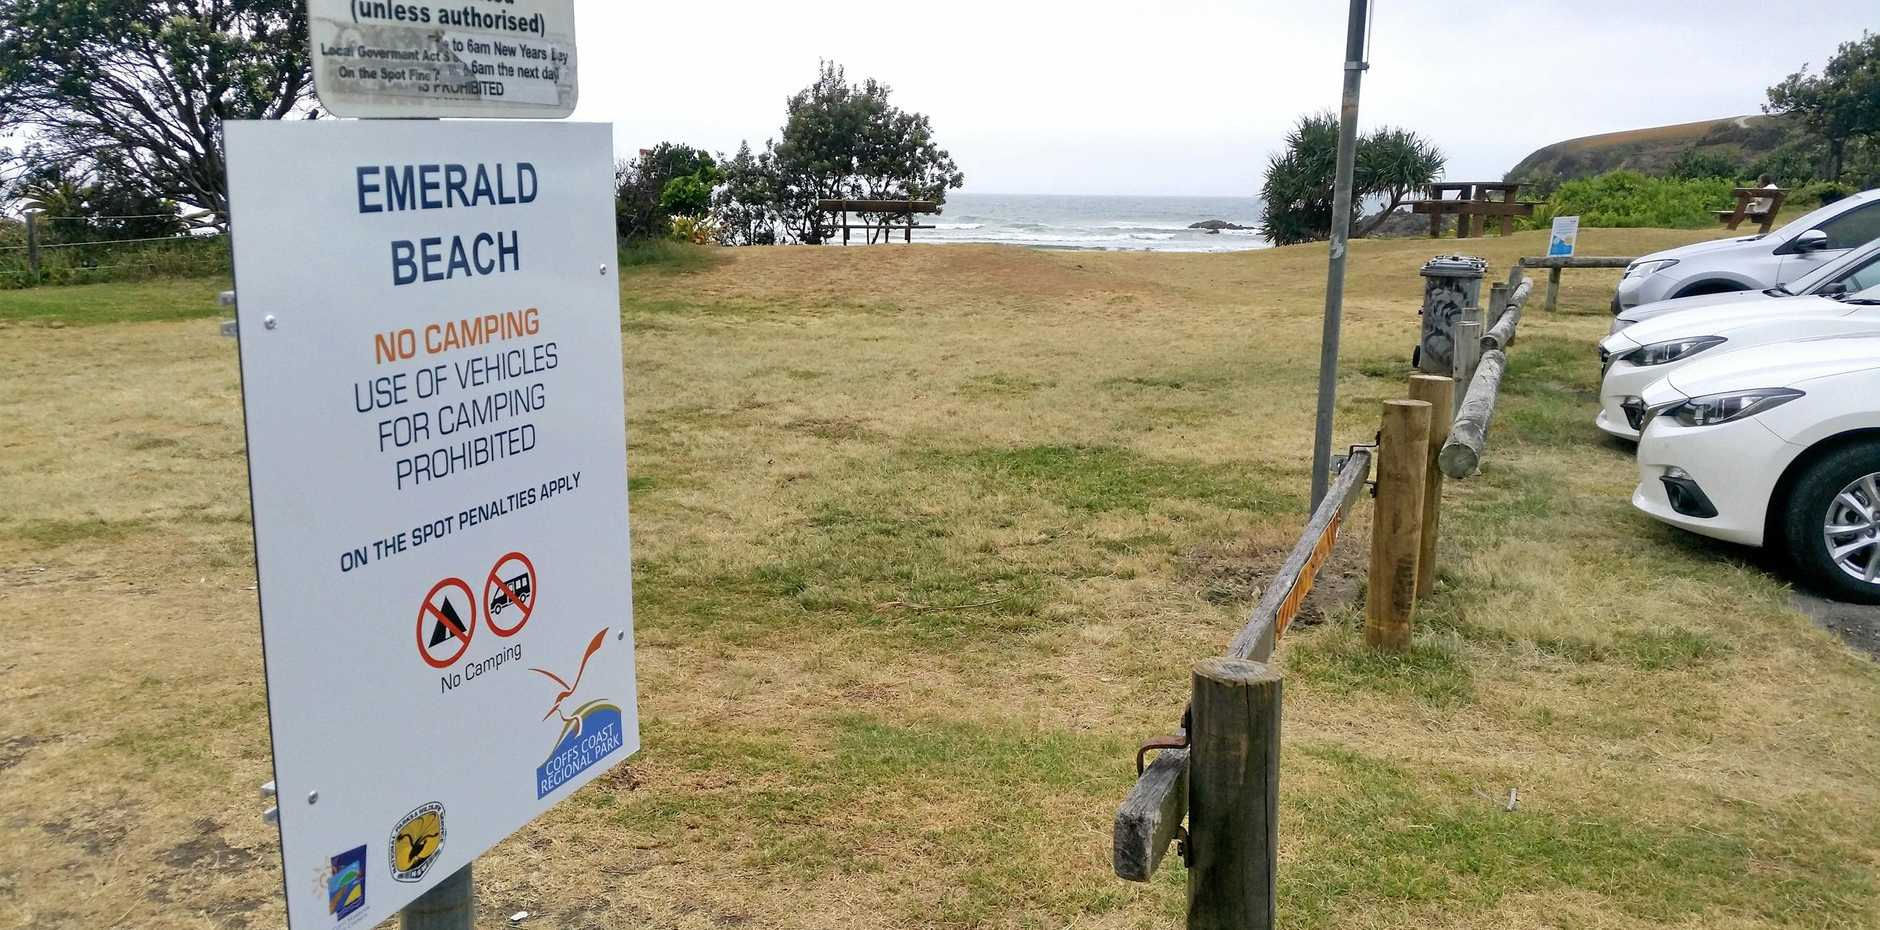 BEACH CLOSED: Find another spot to swim today